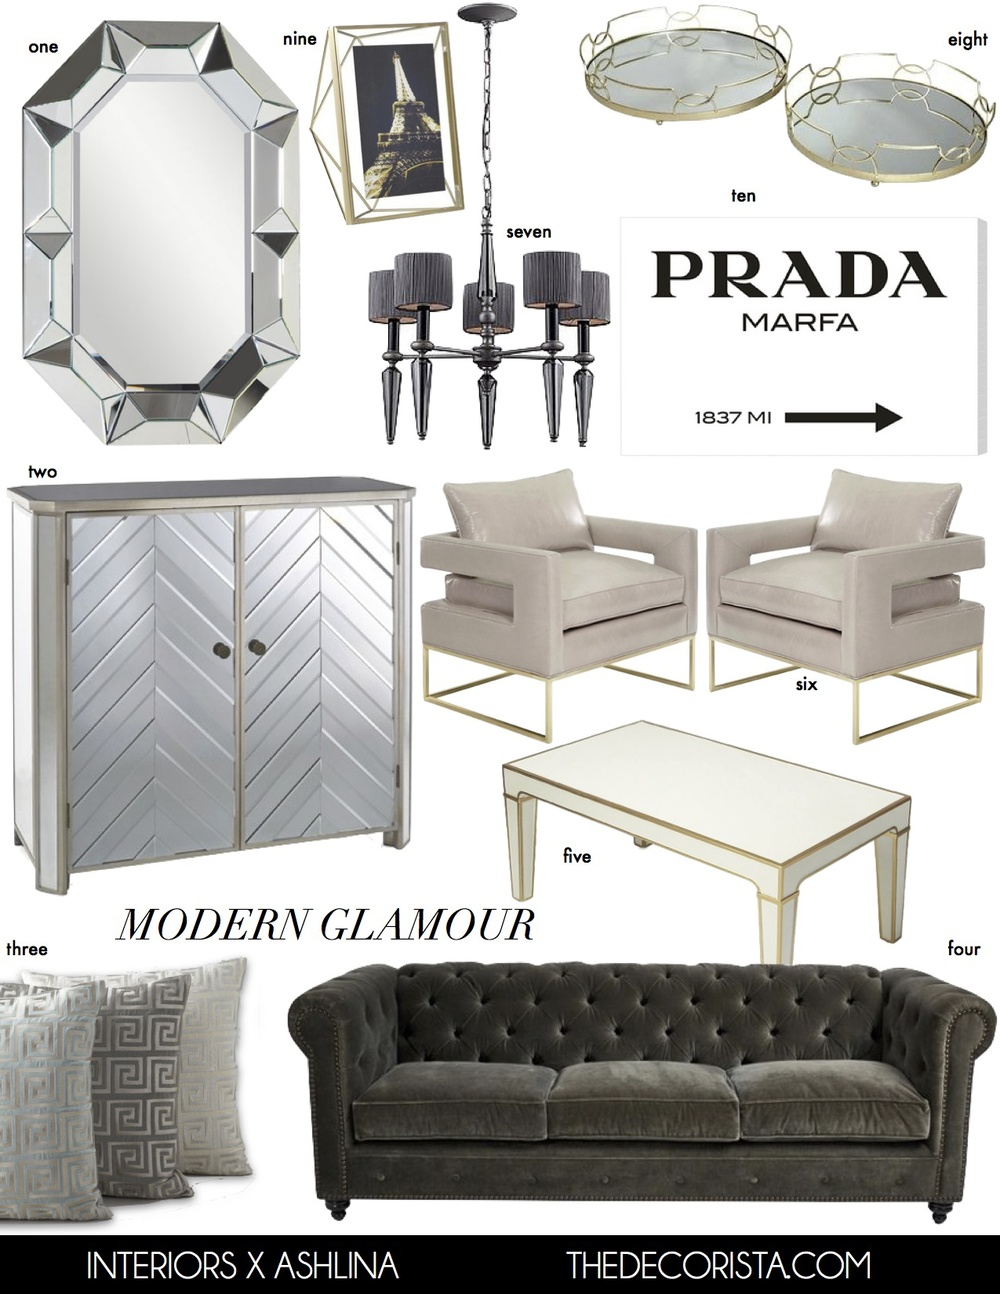 Decorating advice: Elements of modern glamour — The Decorista